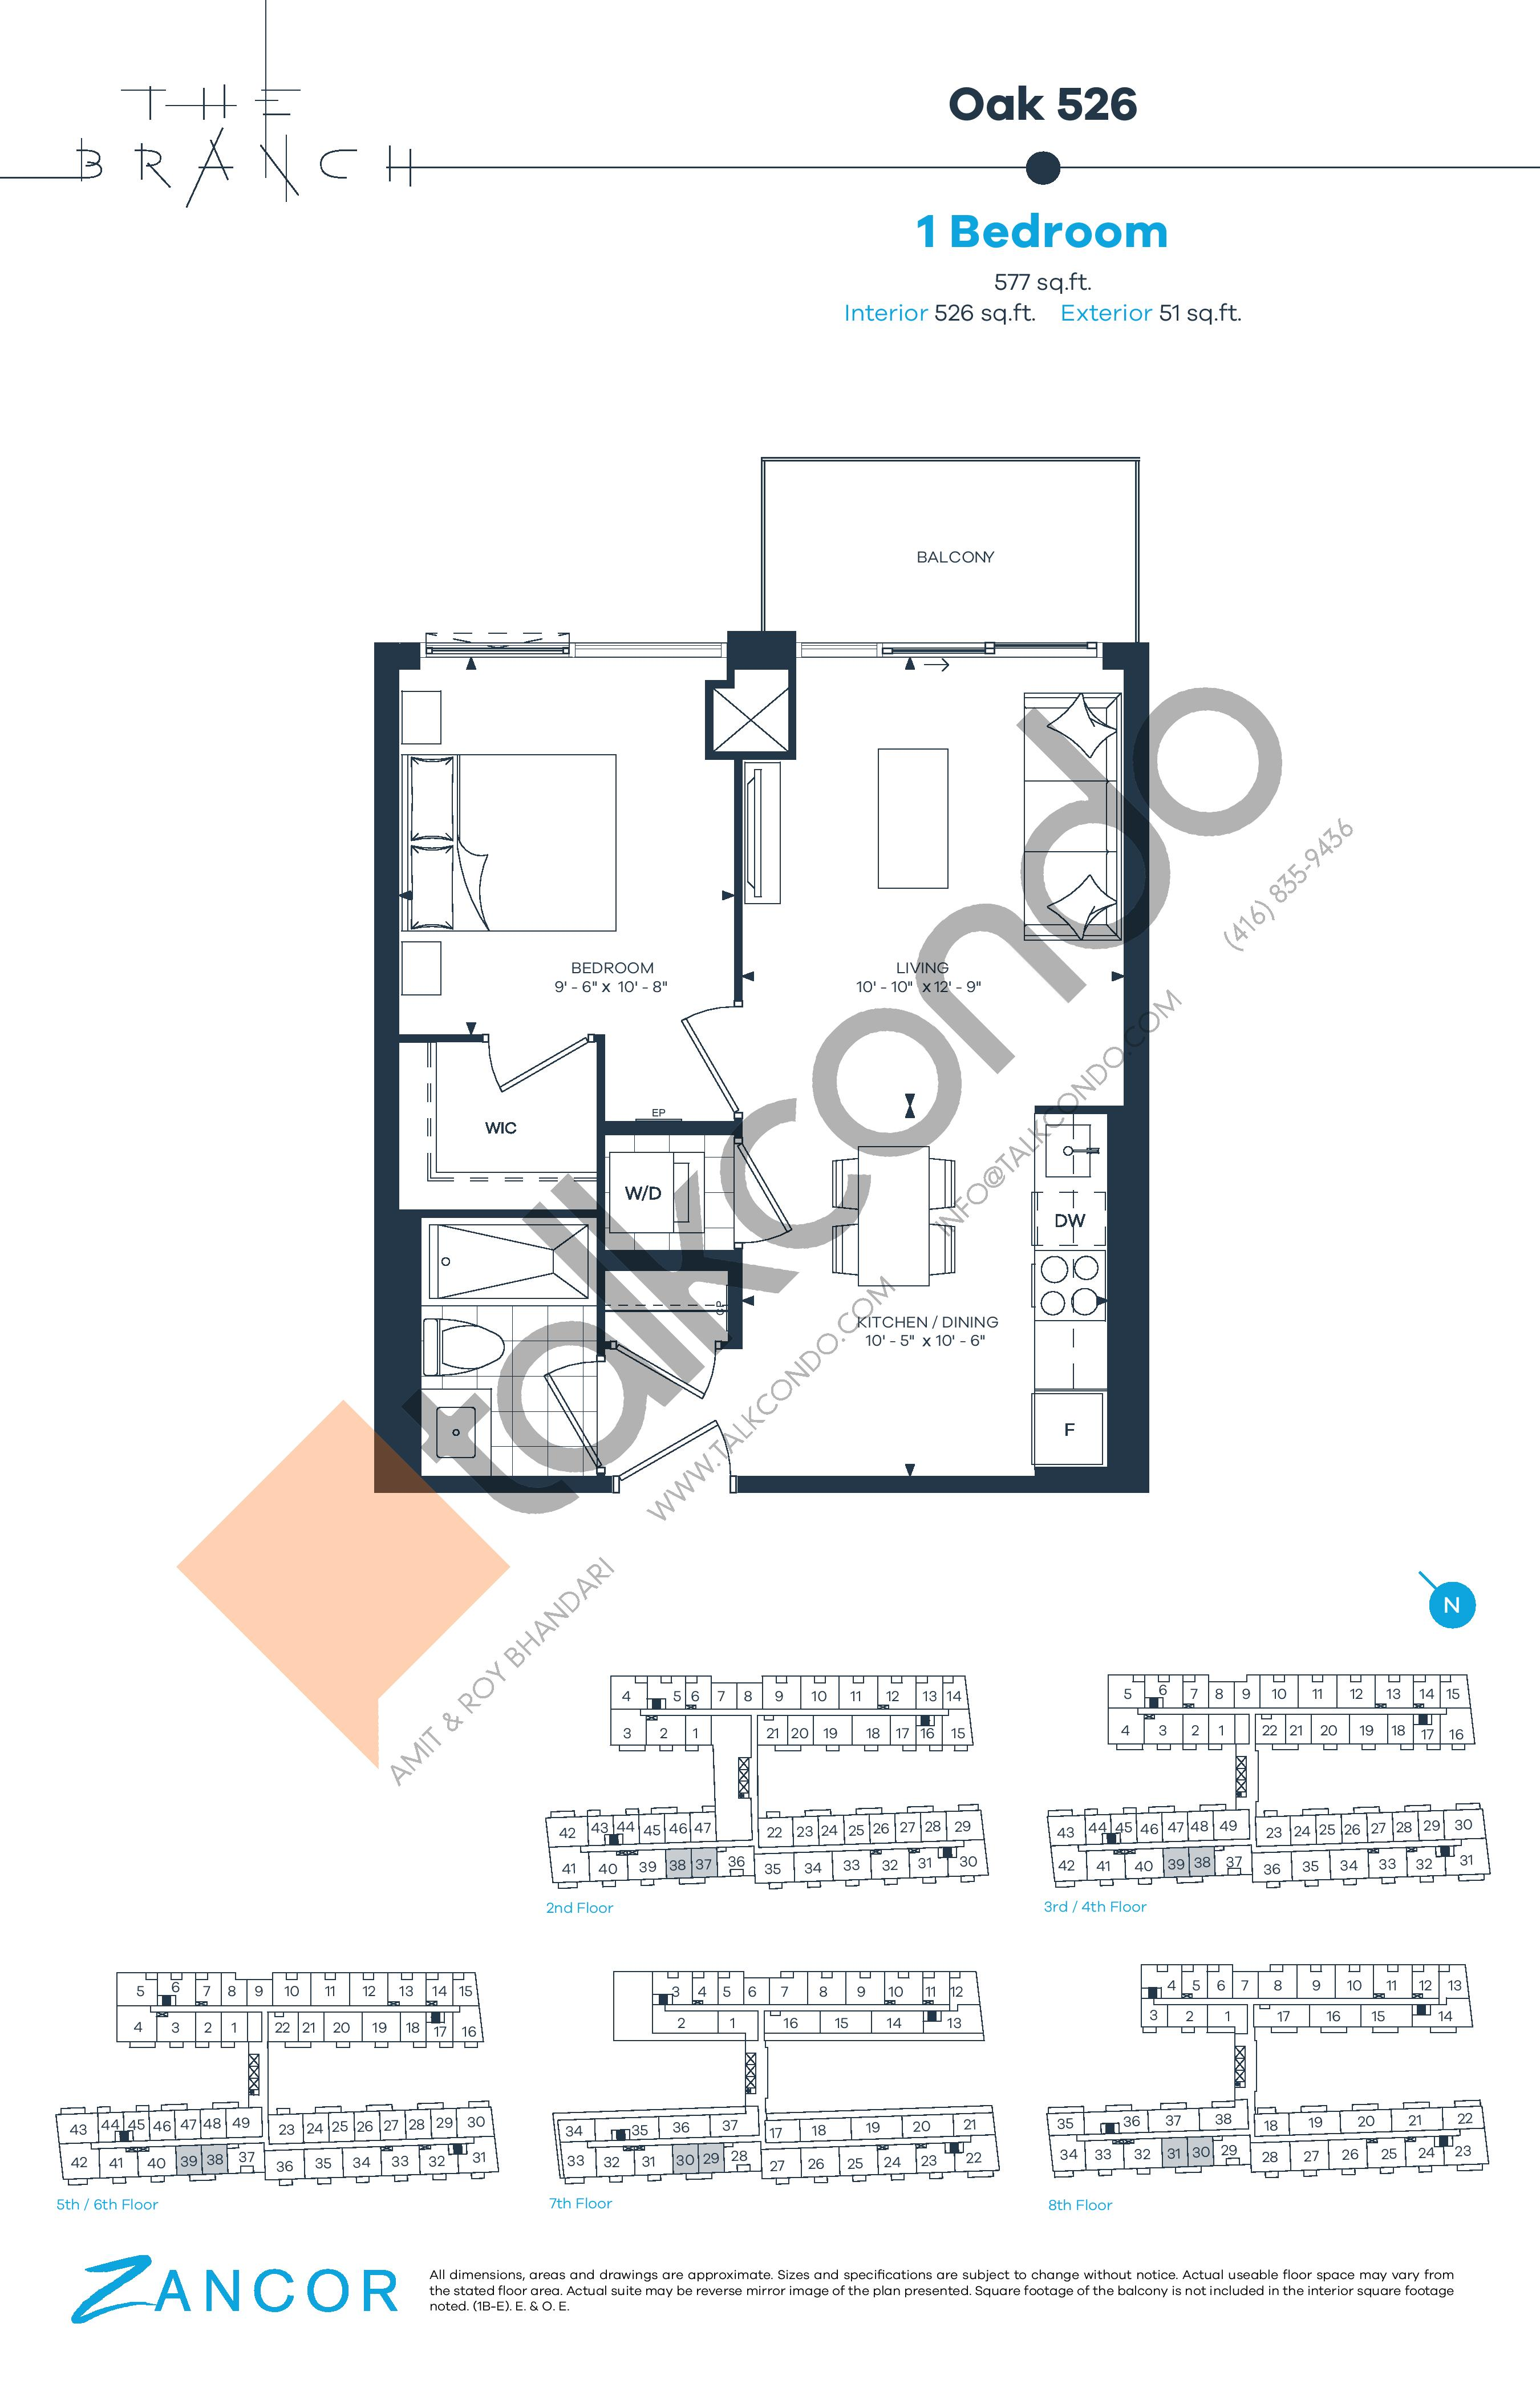 Oak 526 Floor Plan at The Branch Condos - 526 sq.ft